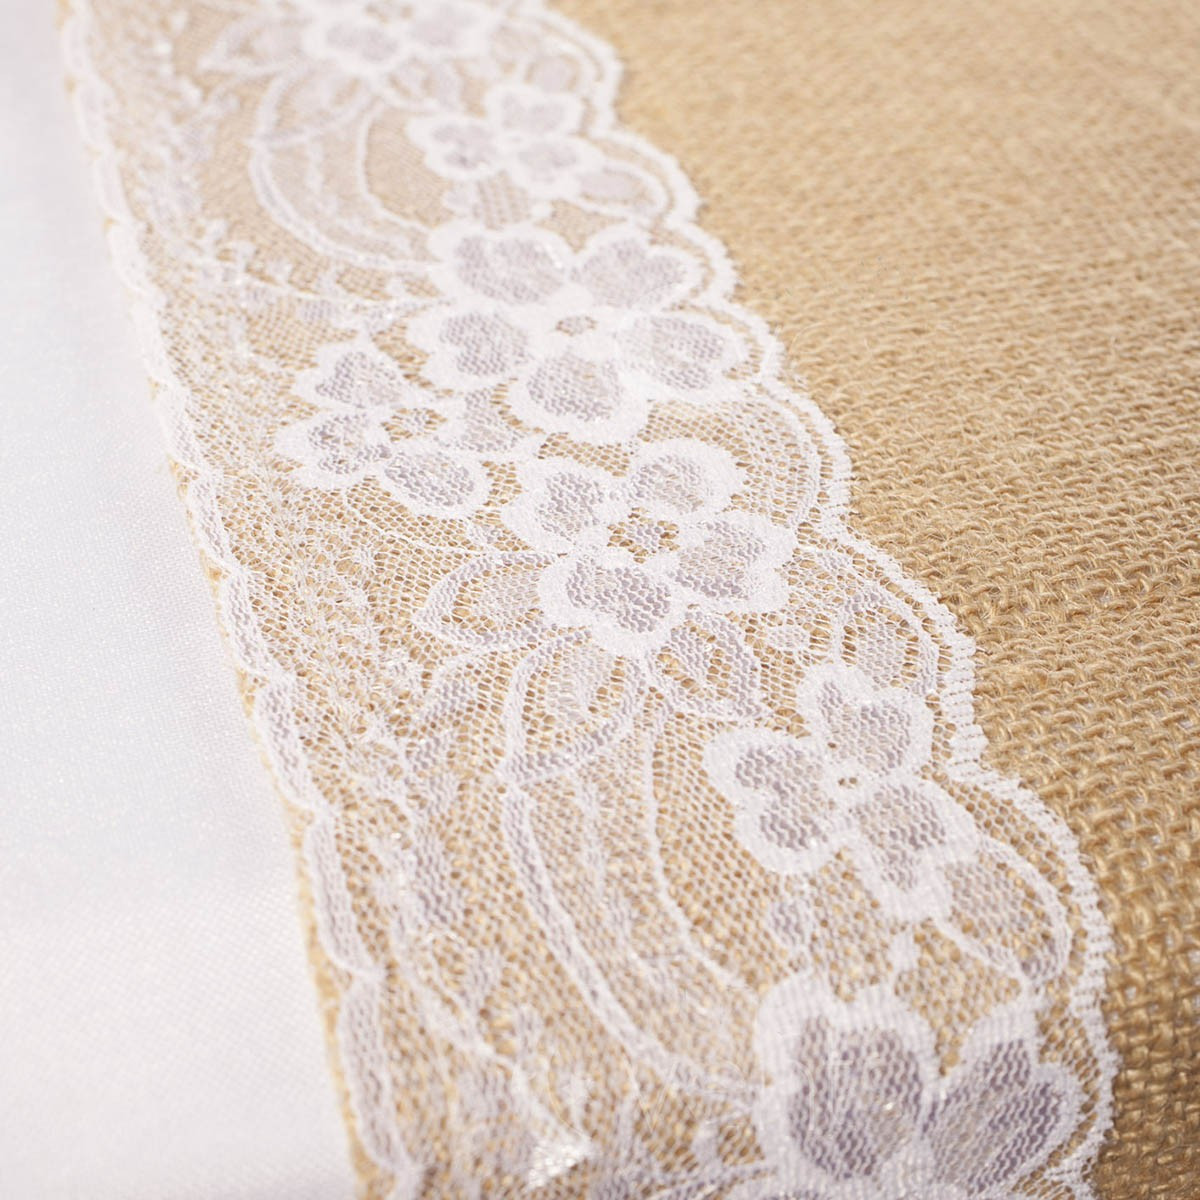 Lace Edging Beautiful Hessian and Lace Table Runners Lace Edging Burlap Of Incredible 44 Ideas Lace Edging